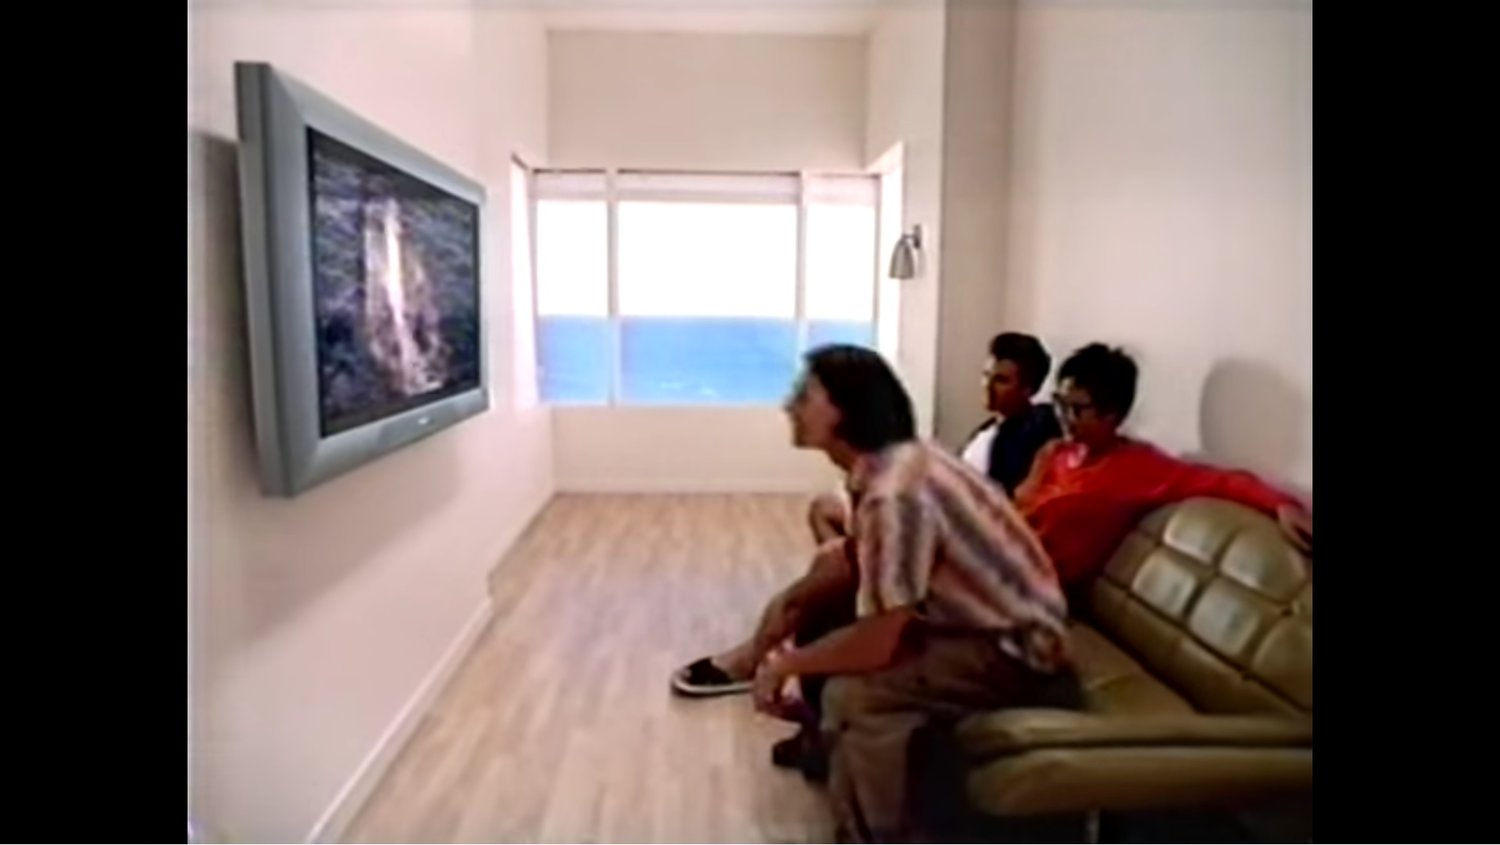 Flashback: Here's One of the First Ads for a Flat Screen TV in 1998